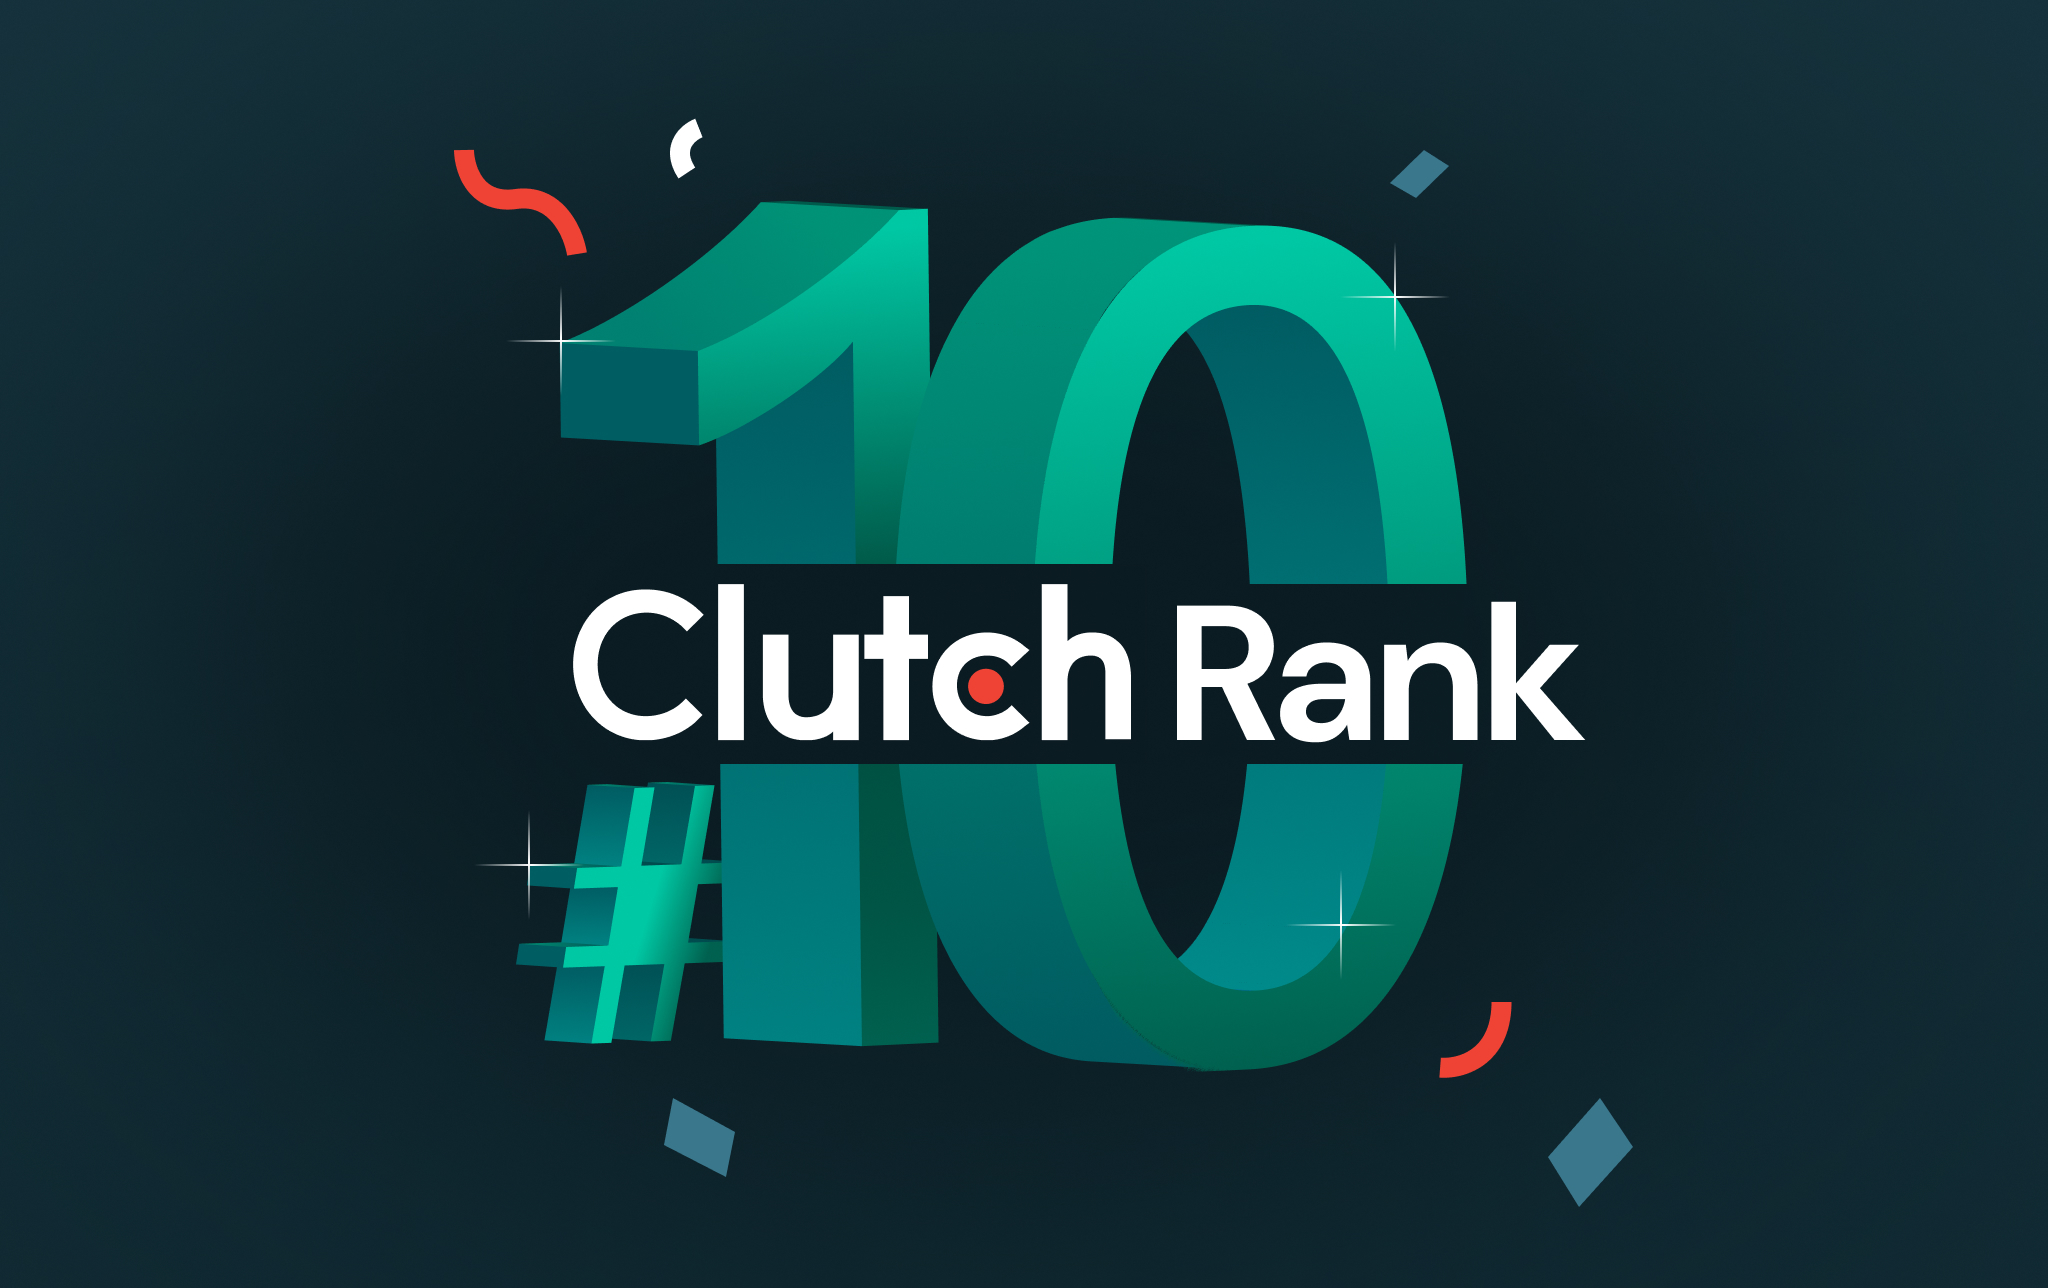 We are 10th in a Clutch Rank